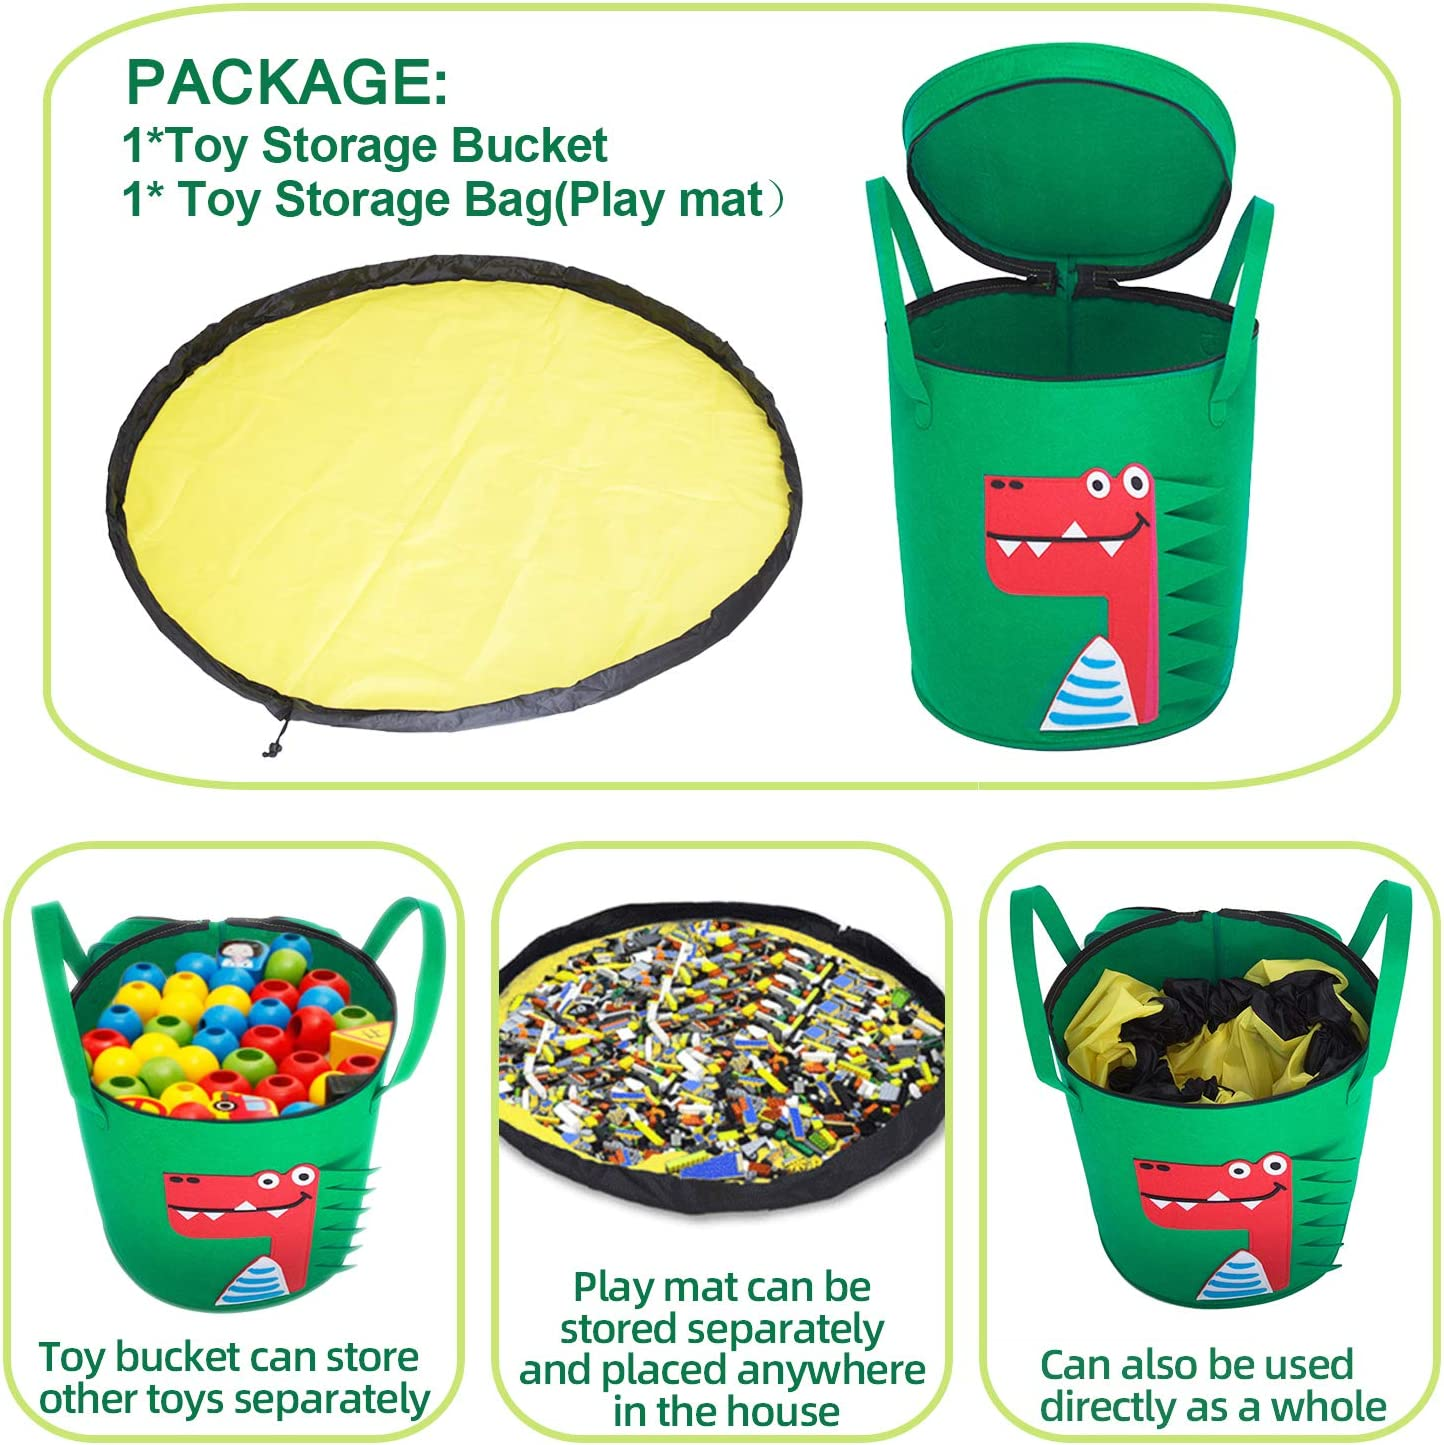 Large Capacity Toy Storage for Kids Room Classroom Toy Organizer Poemyoued Toy Storage Basket and Play Mat,Collapsible Cartoon Crocodile Felt Bucket,Outdoor Toy Quick Storage Bag